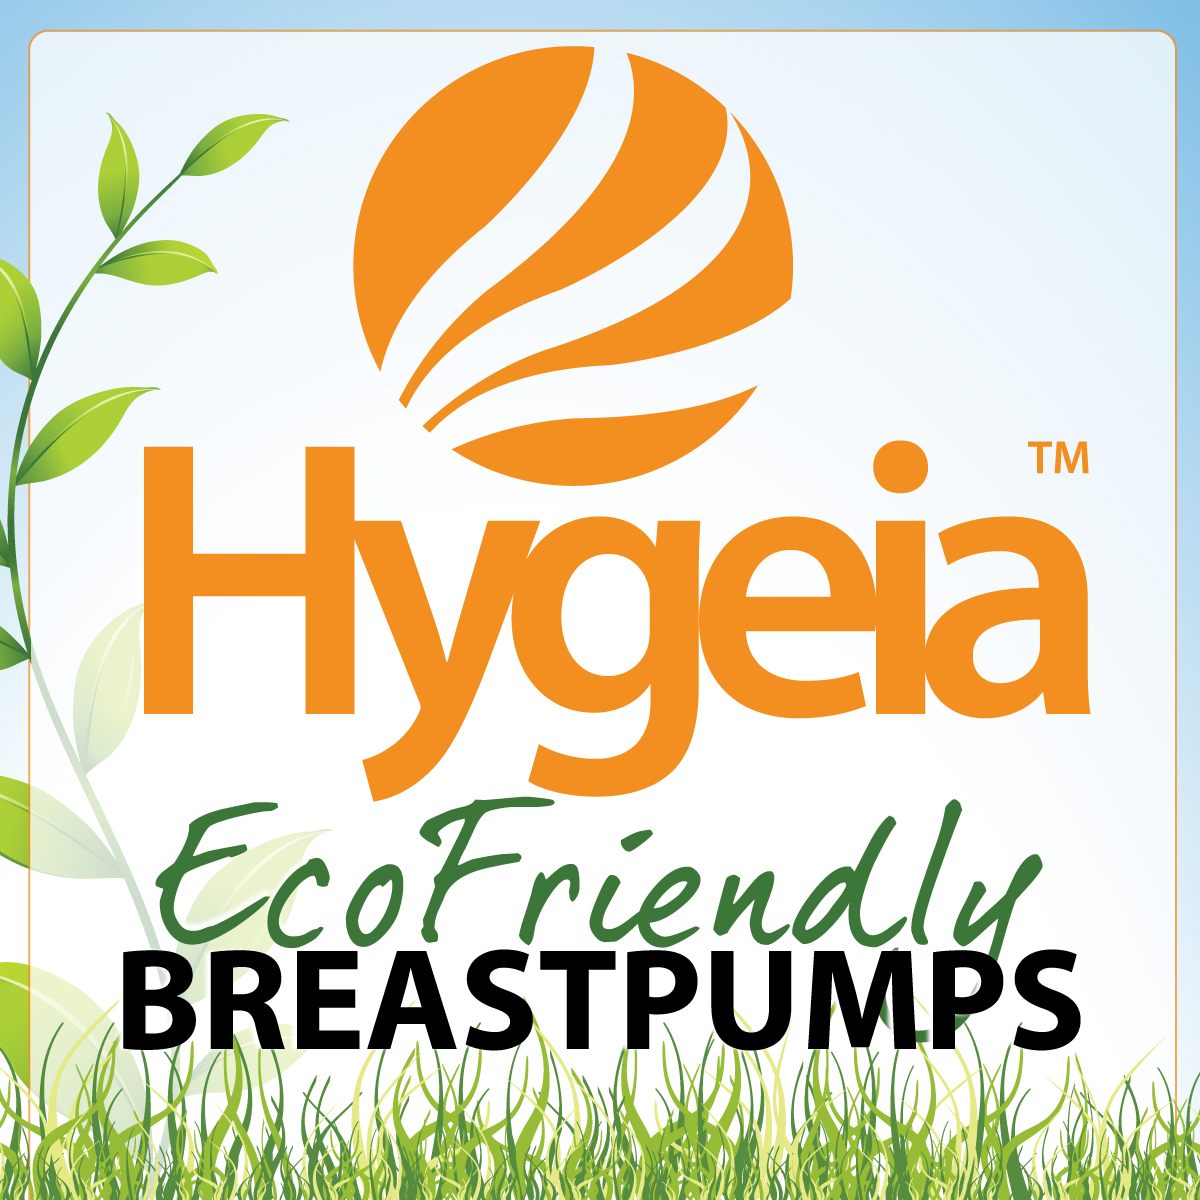 hygeia-ecofriendly-logo-large.jpg